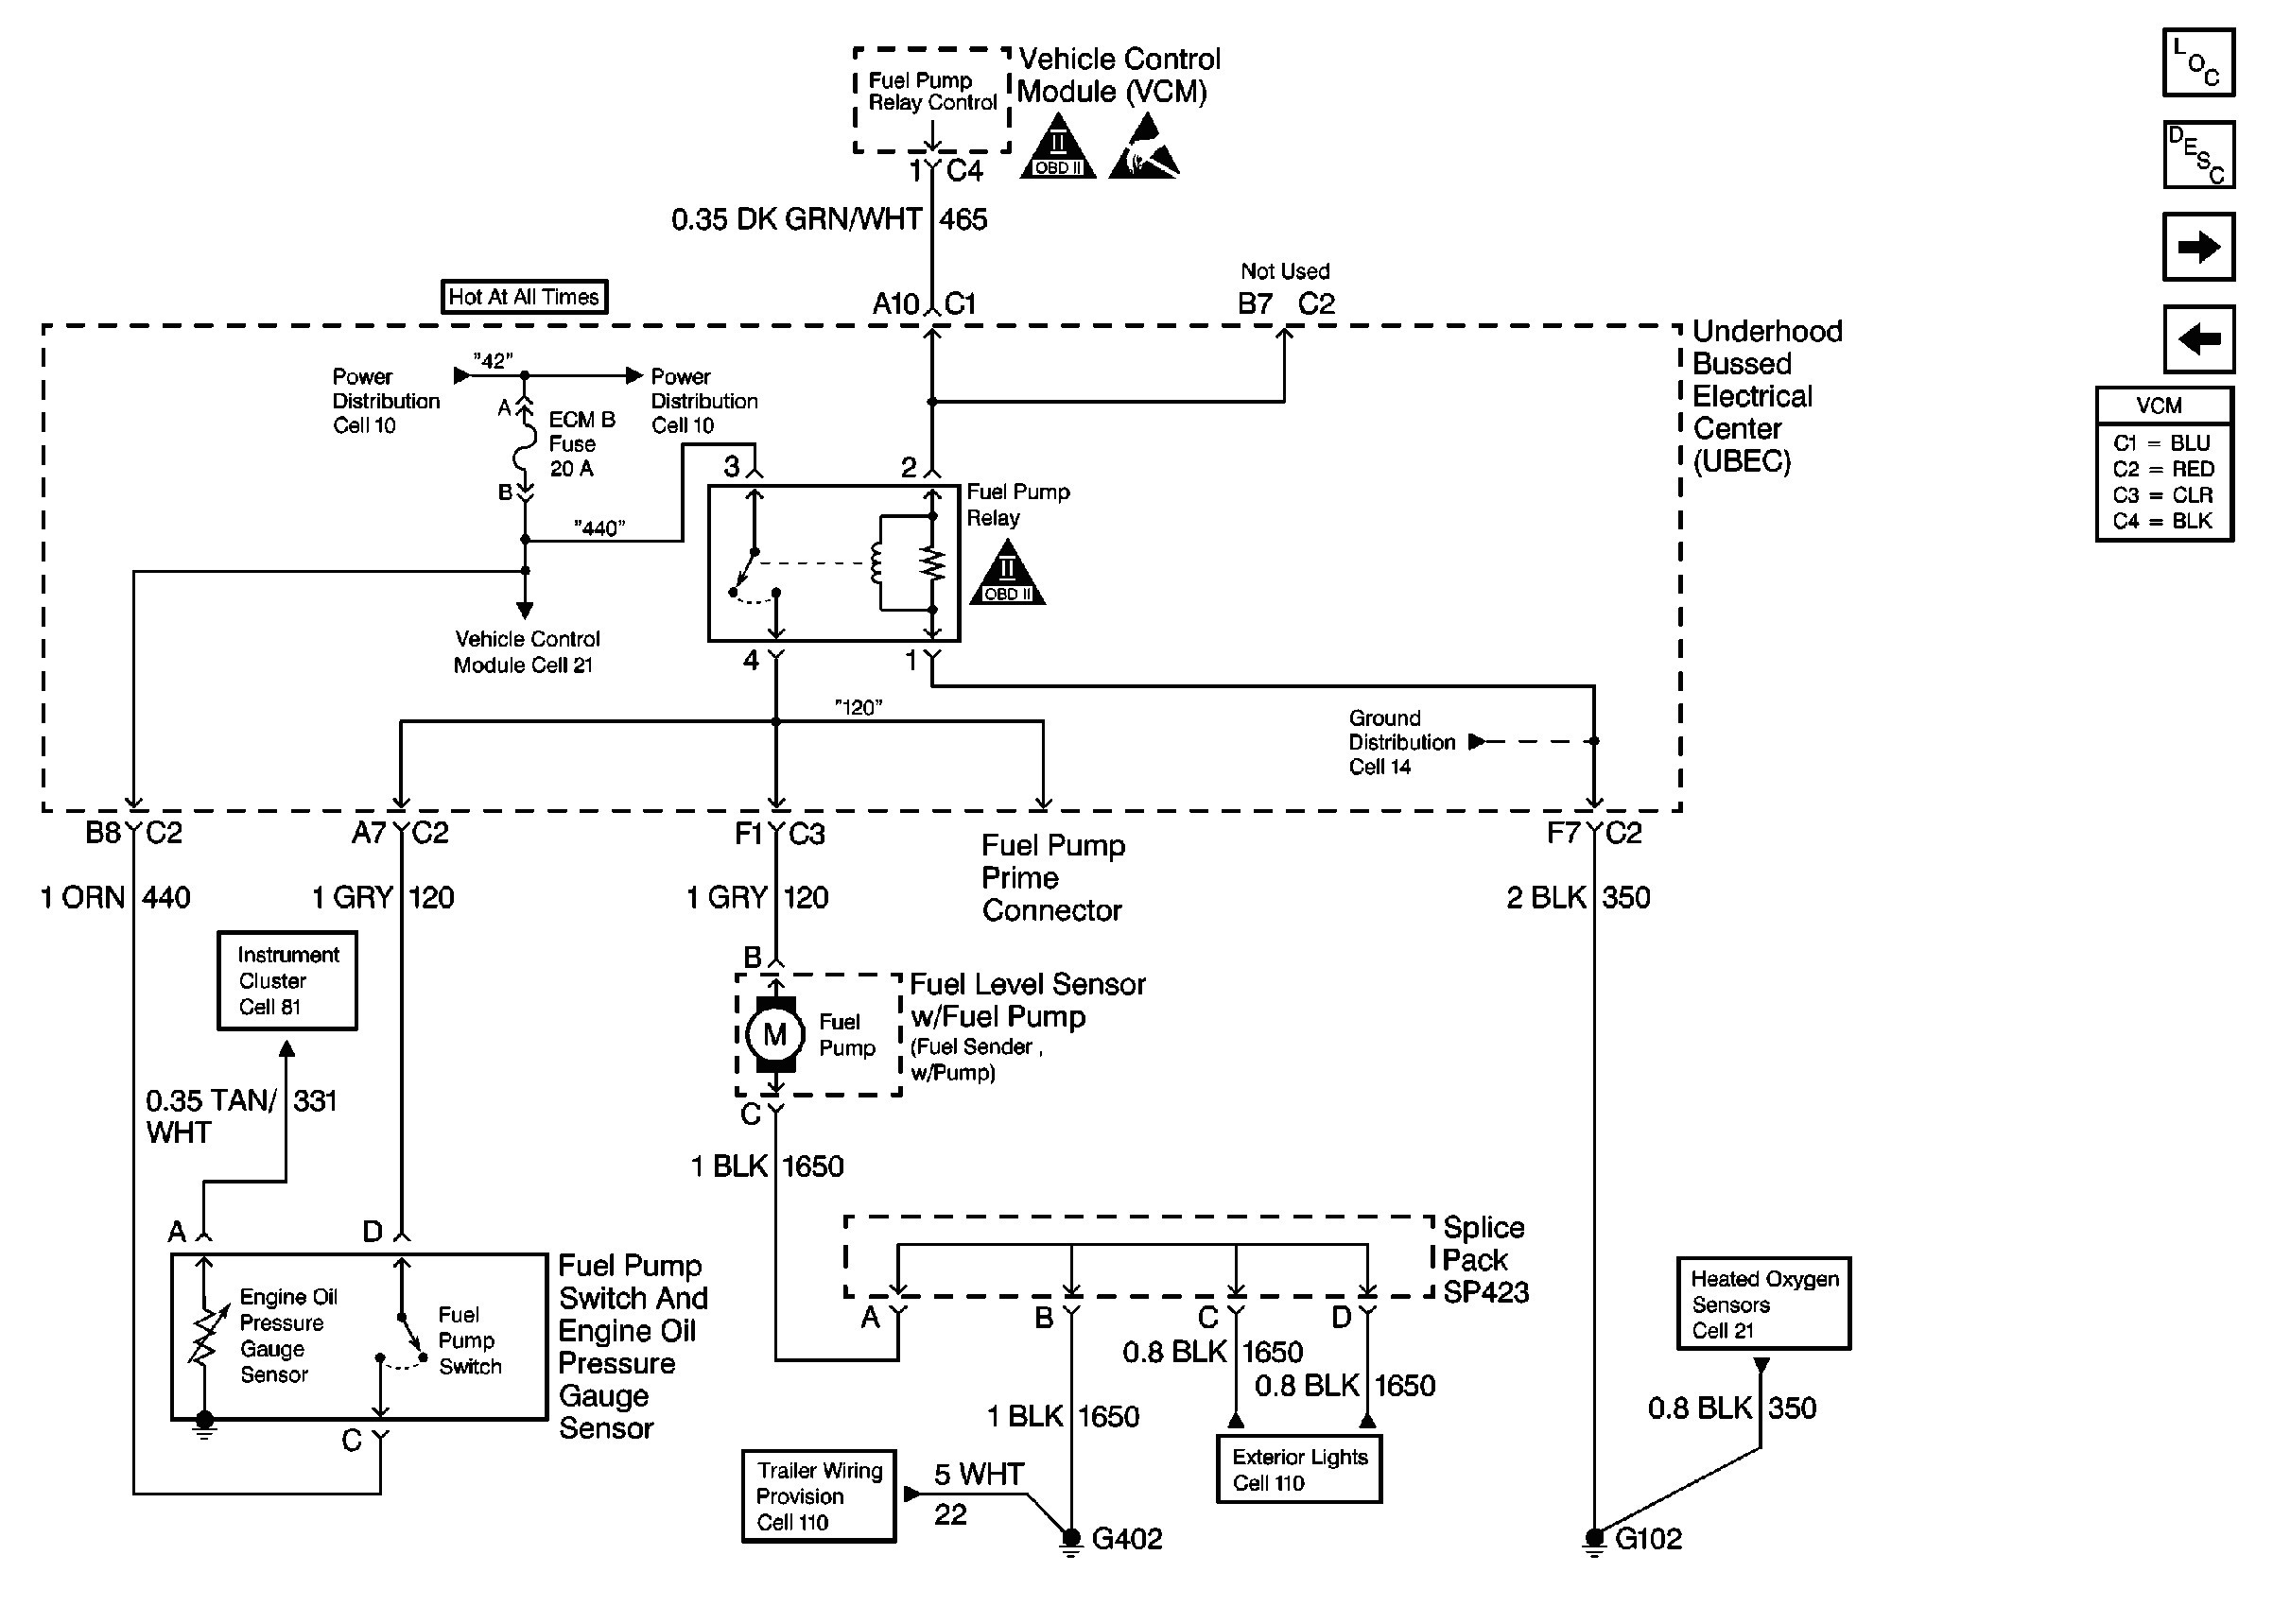 wiring diagram for fuel pump relay 7 round pin trailer with brakes electric harness best site